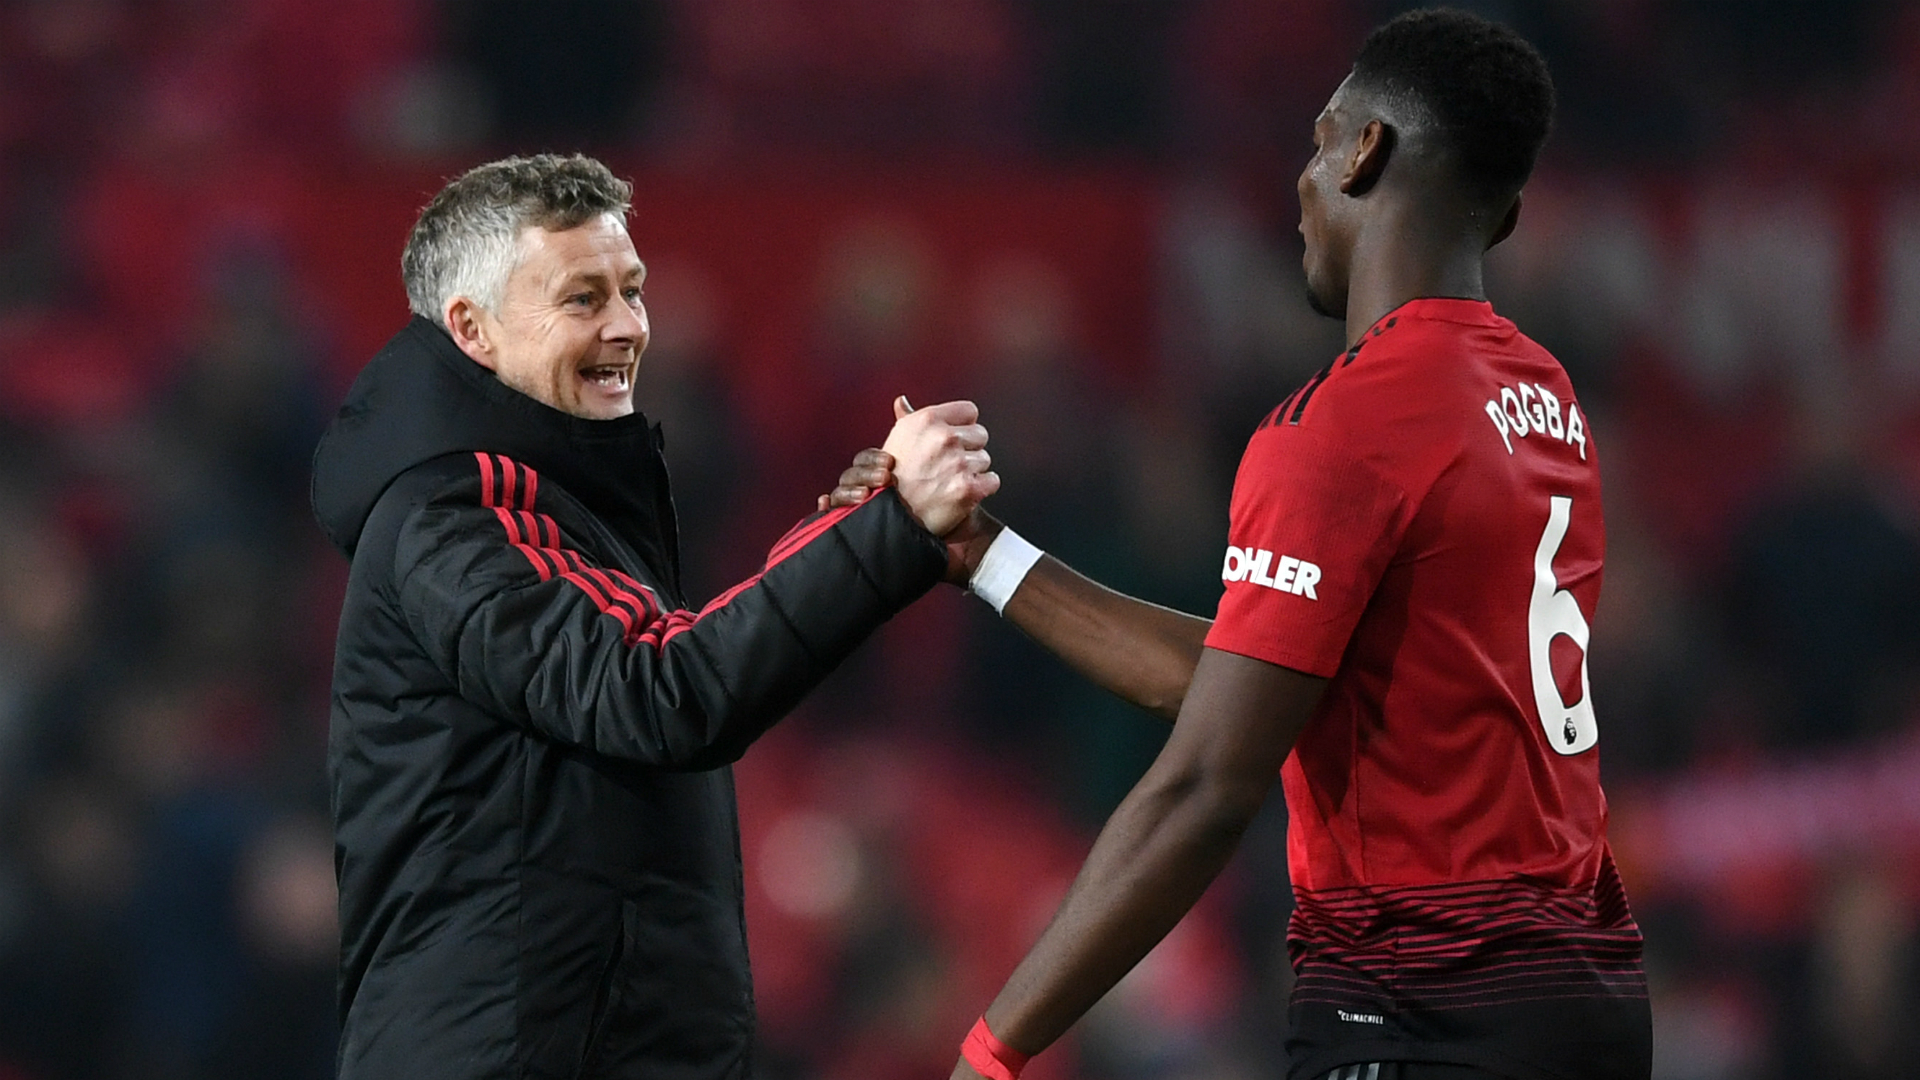 Pogba wants Solskjaer to get permanent Manchester United job